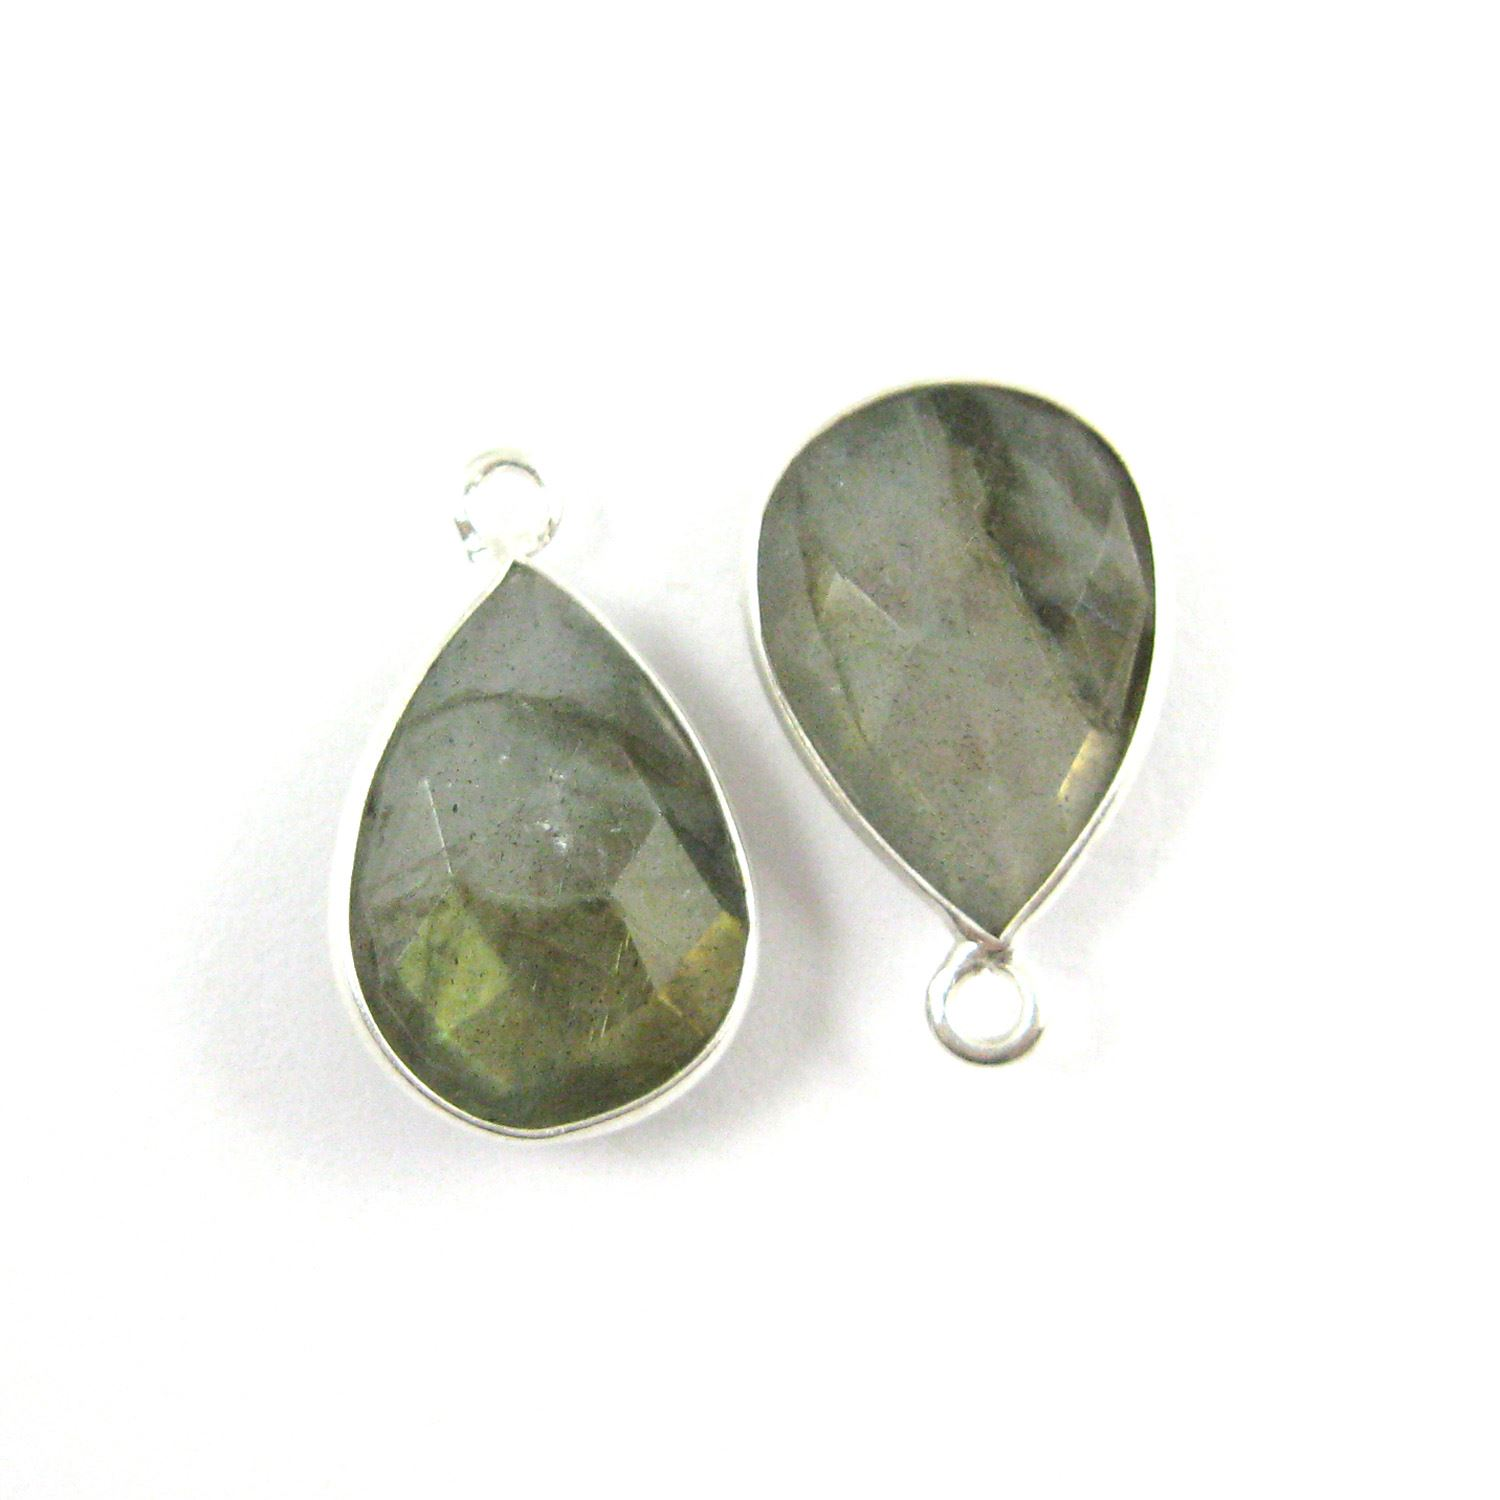 Bezel Gemstone Pendant -Sterling Silver Gem- 10x14mm Faceted Small Teardop Shape - Labradorite (sold per 2 pieces)